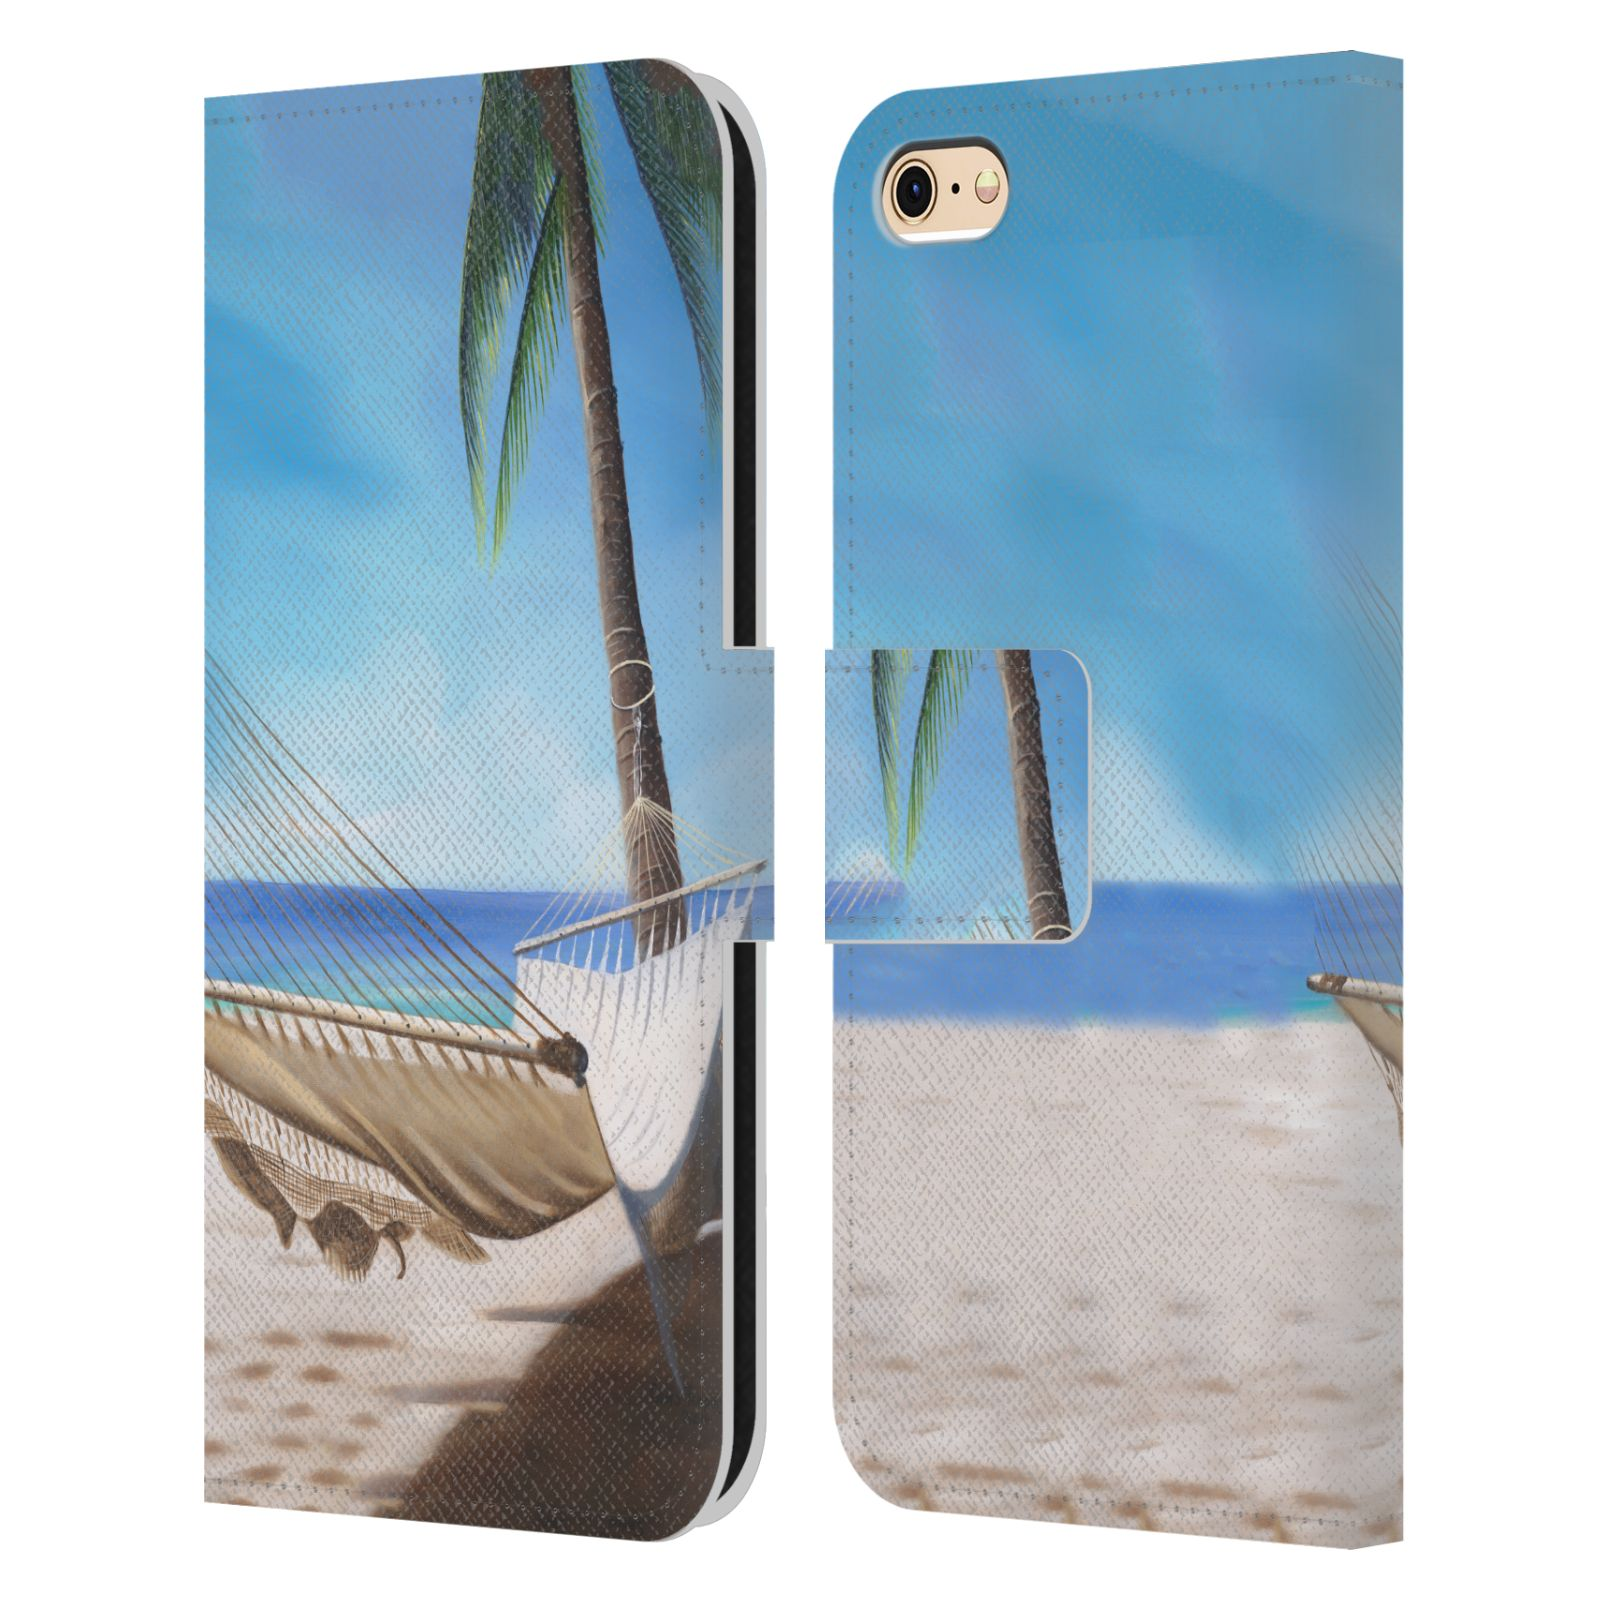 OFFICIAL-GENO-PEOPLES-ART-HOLIDAY-LEATHER-BOOK-CASE-FOR-APPLE-iPHONE-PHONES